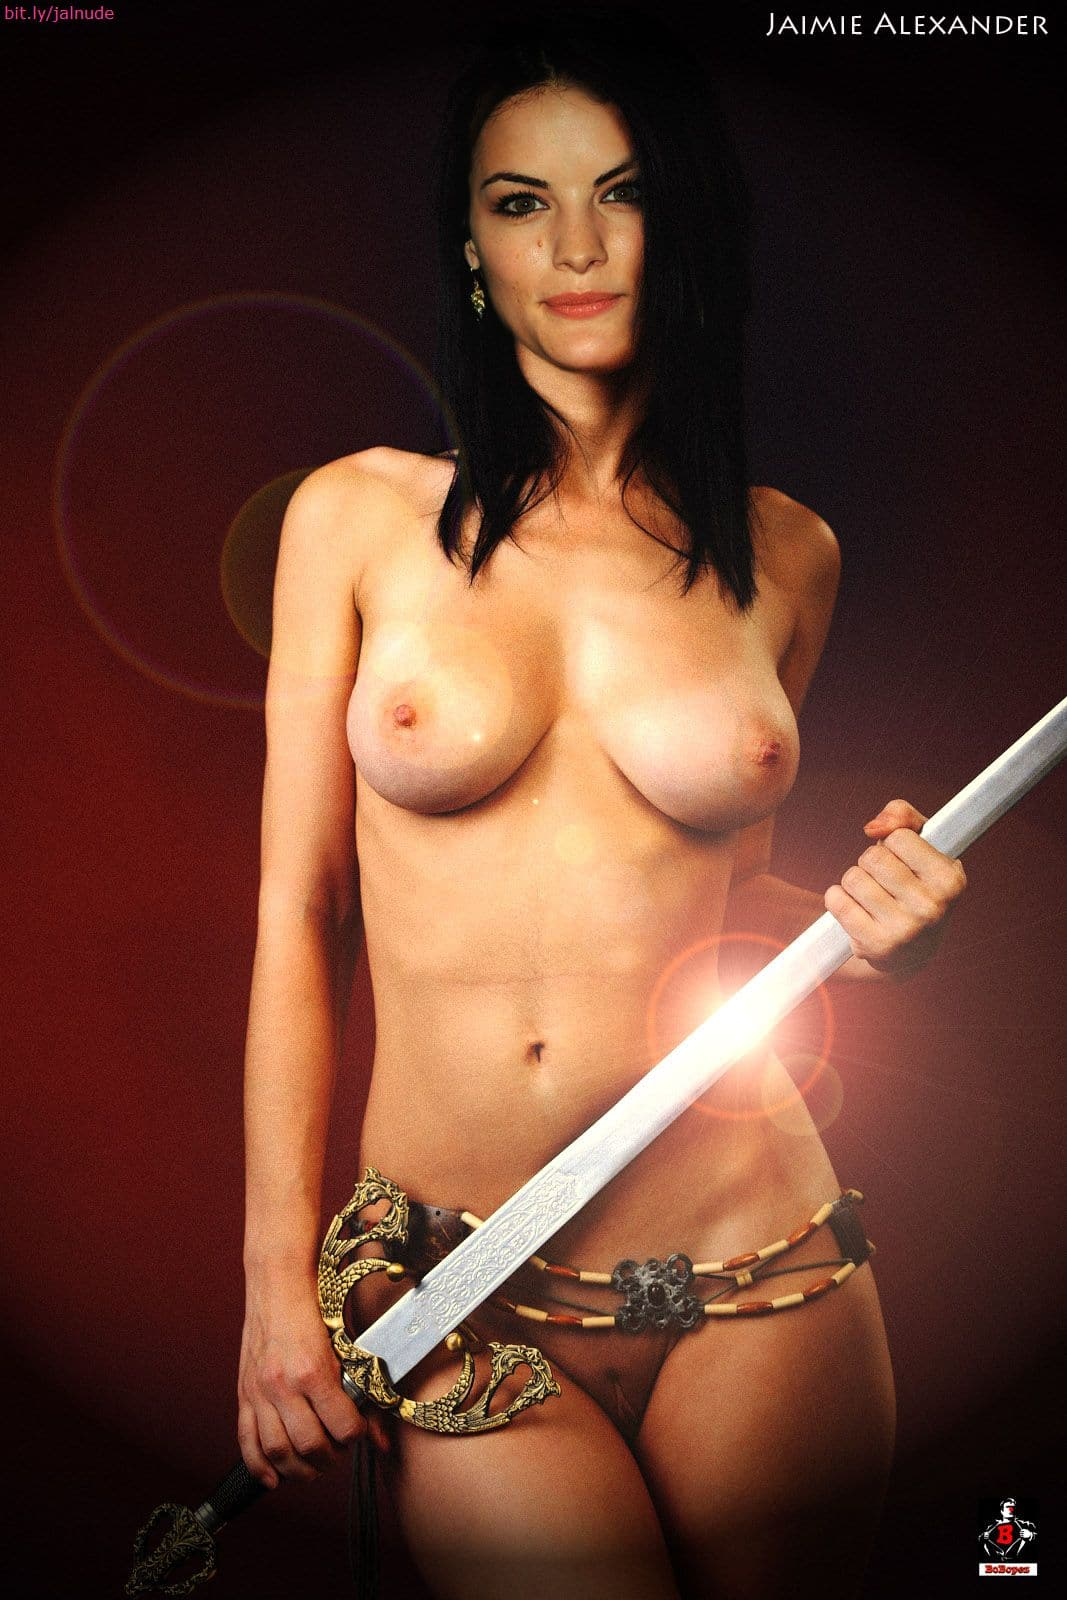 Very Nude pictures of jaimie alexander that